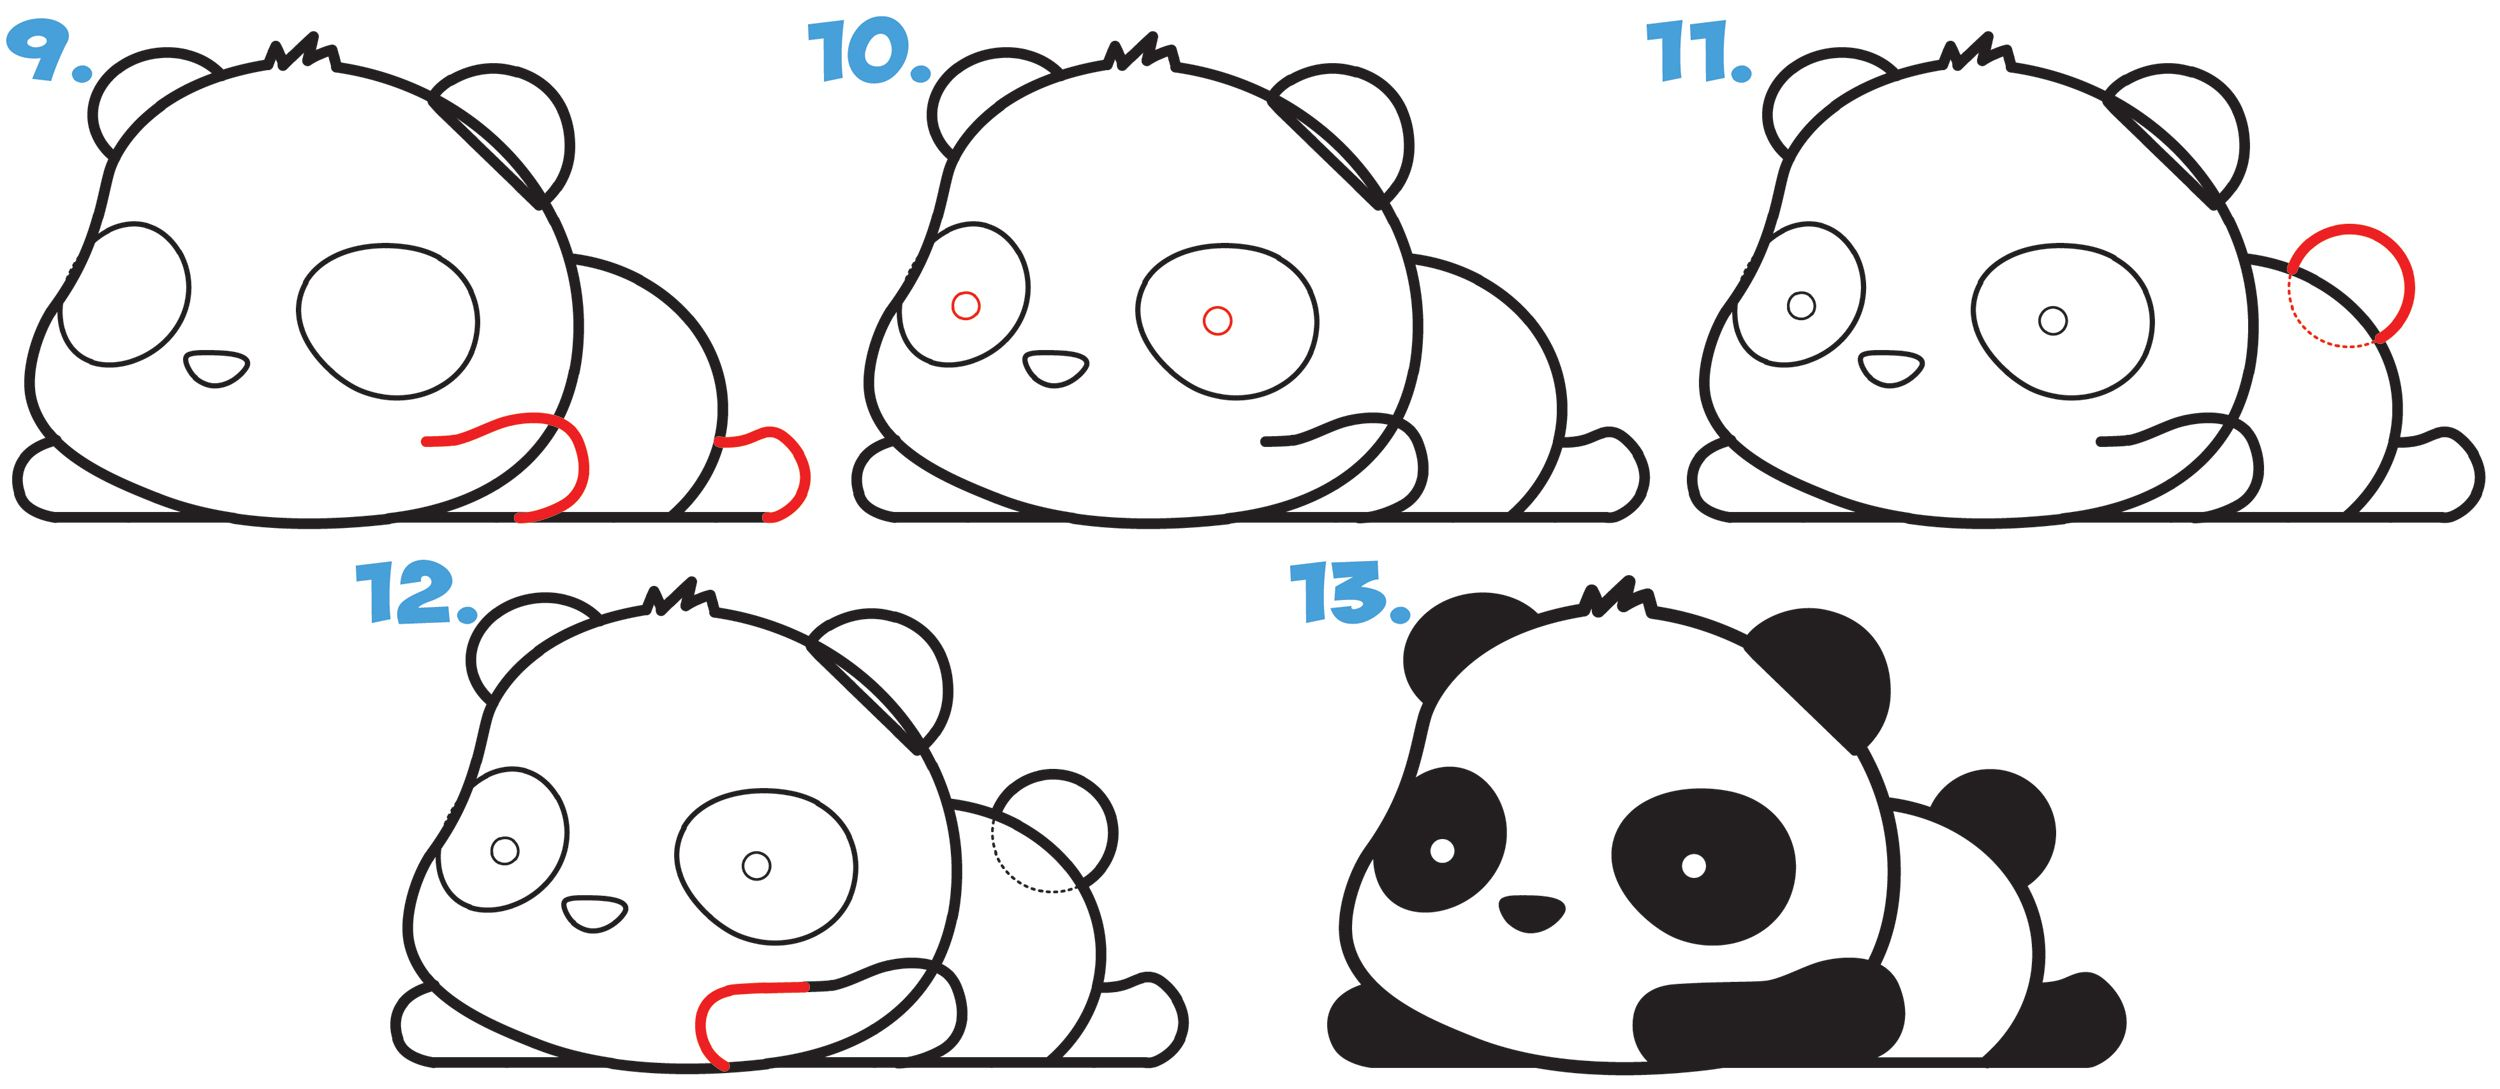 How To Draw A Super Cute Kawaii Panda Bear Laying Down Easy Step